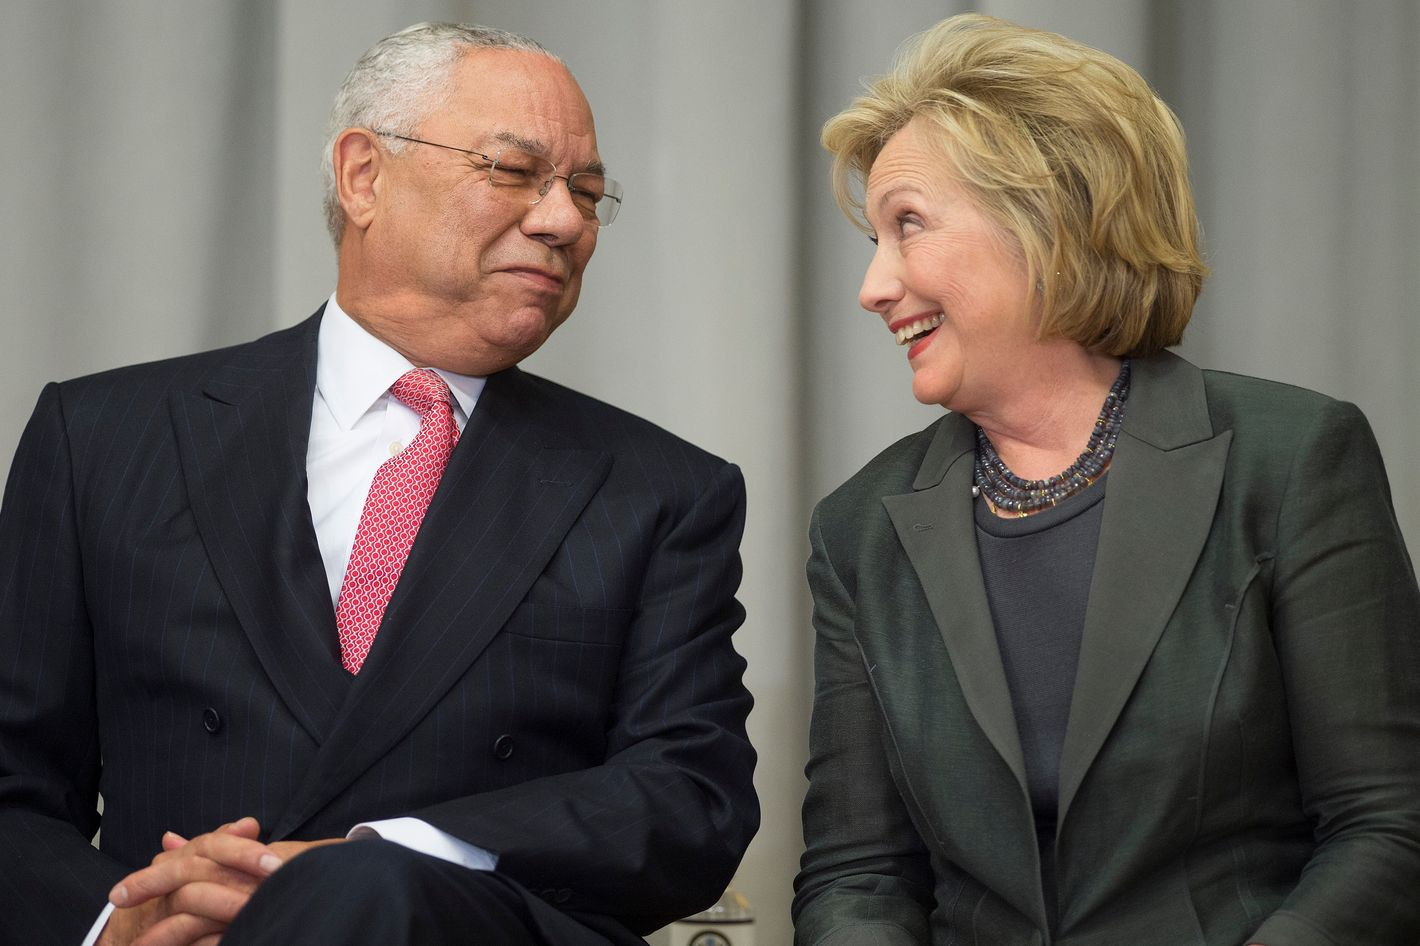 Hillary Clinton claims predecessor Colin Powell advised personal email usage